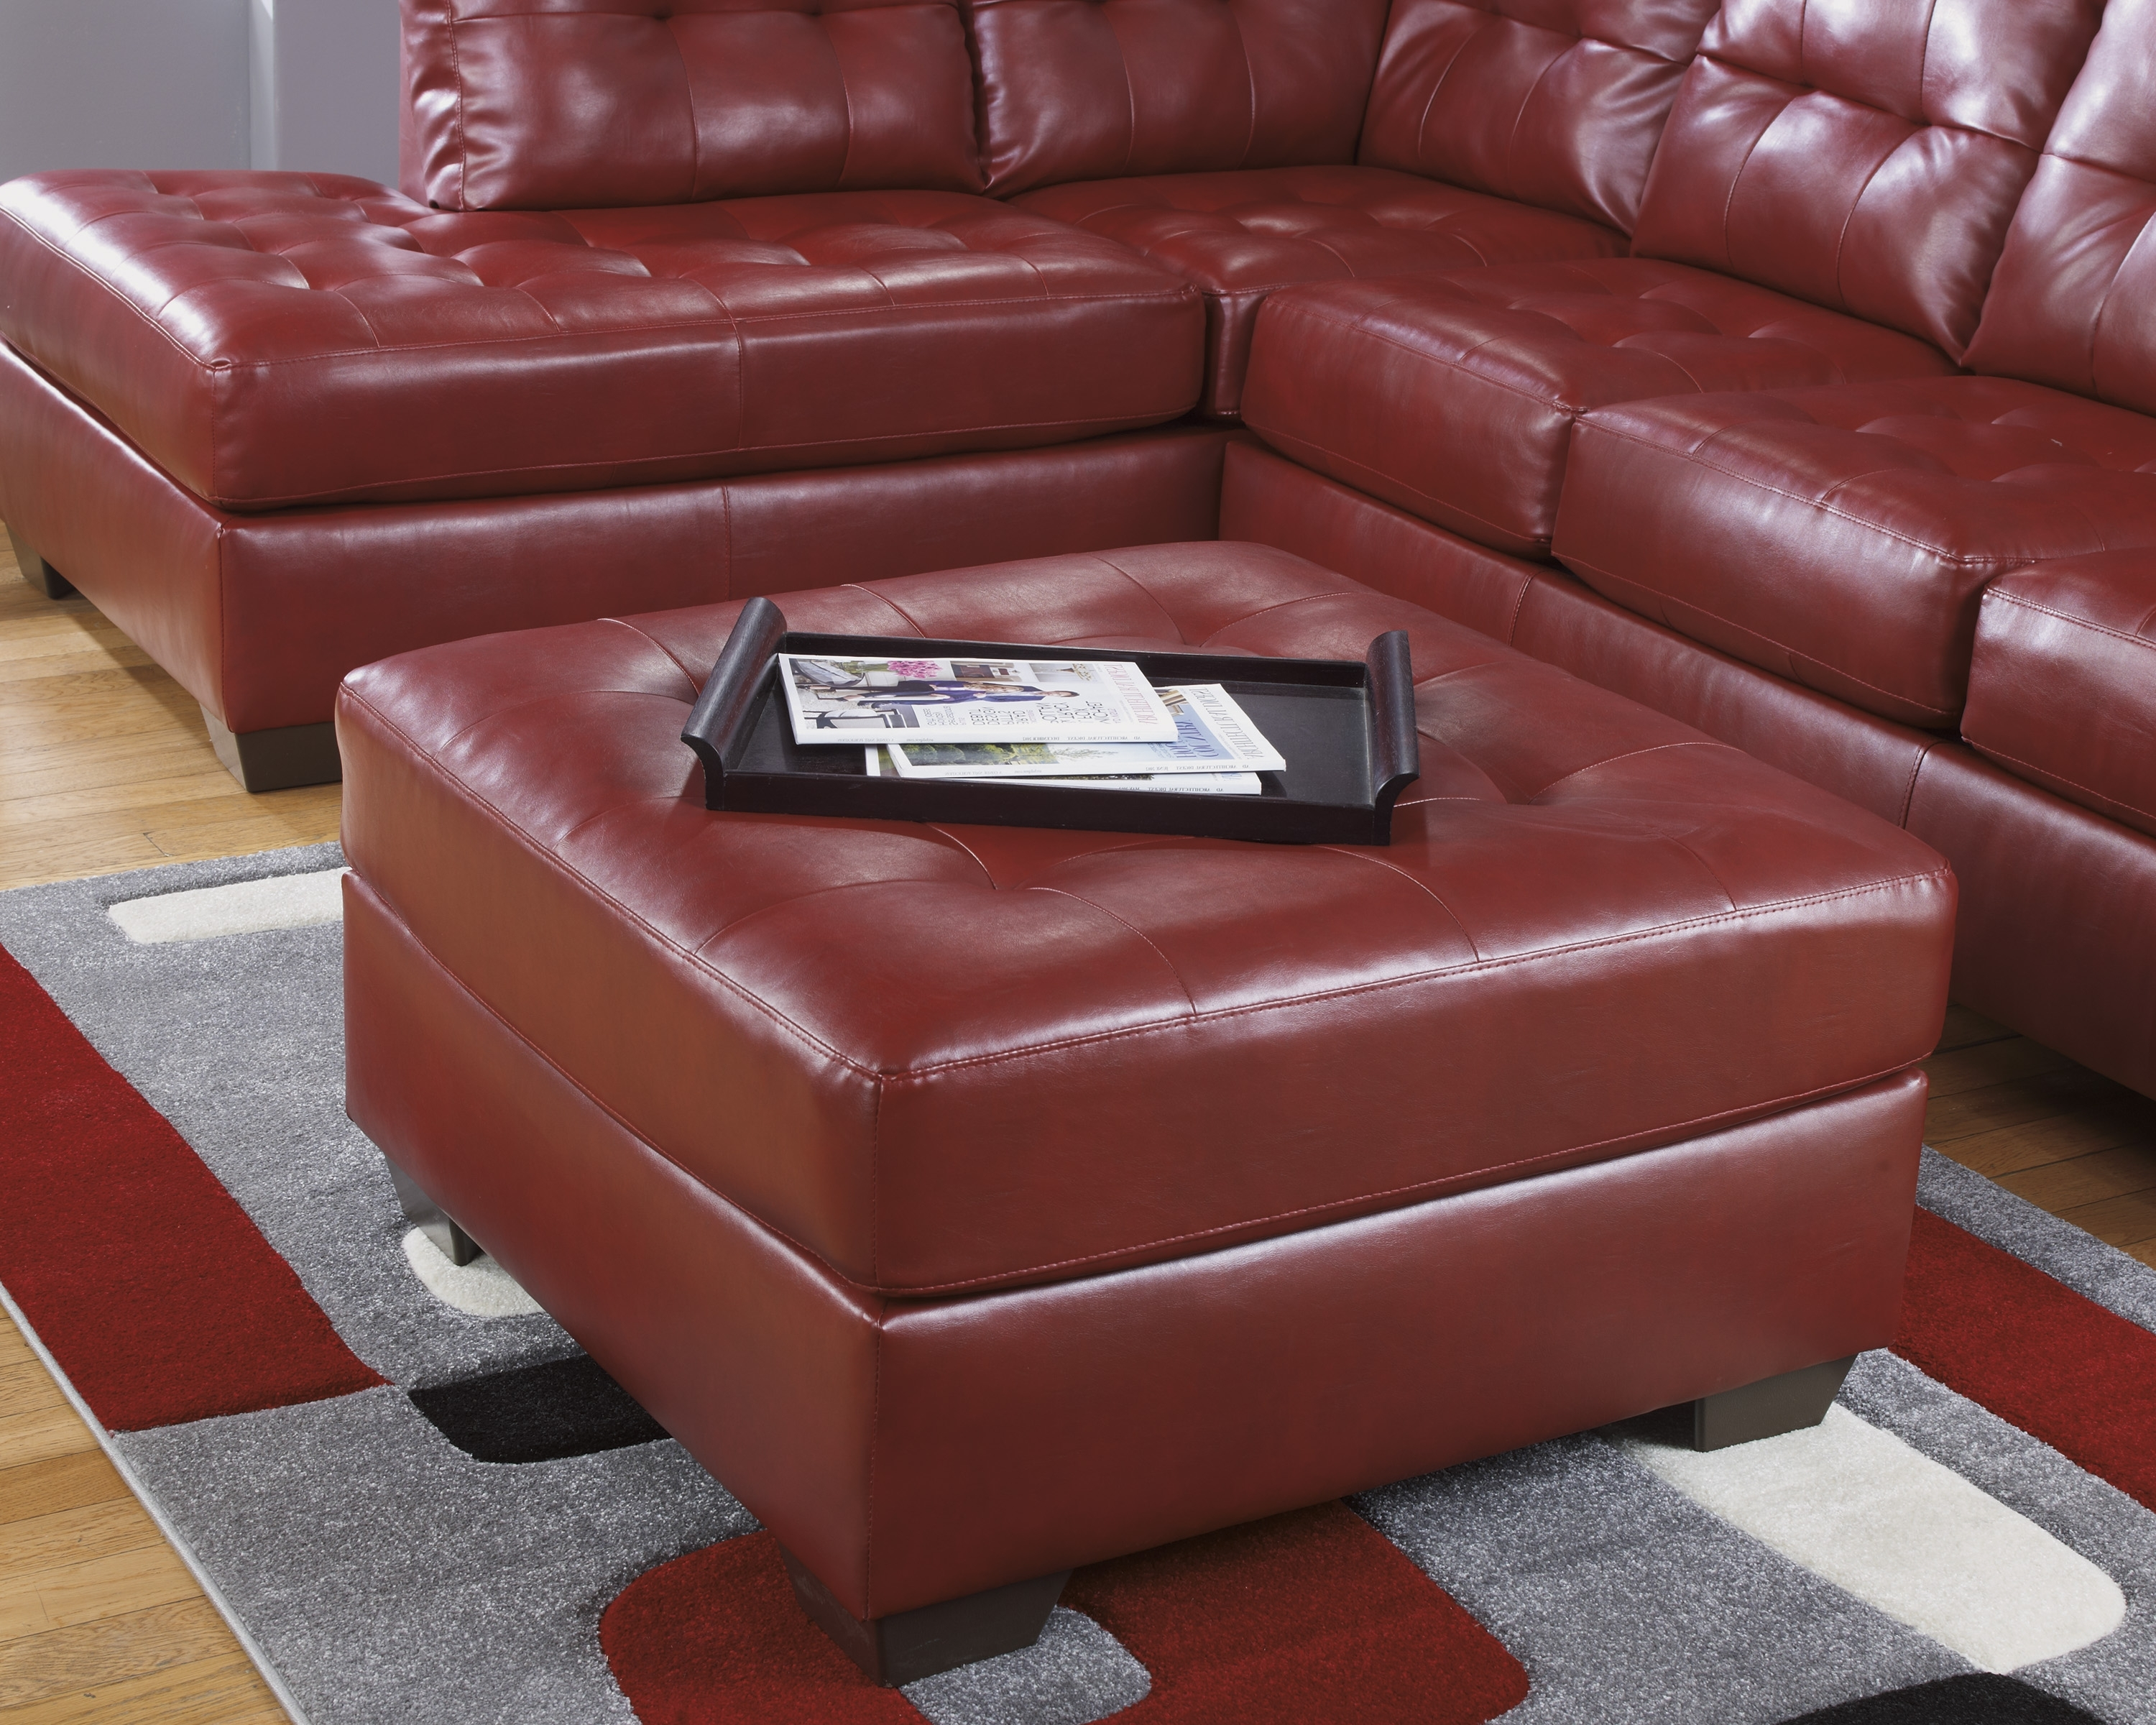 Preferred Ashley Furniture Leather Sectionals, Ashley Furniture Sofa Throughout Red Leather Sectionals With Ottoman (View 9 of 15)